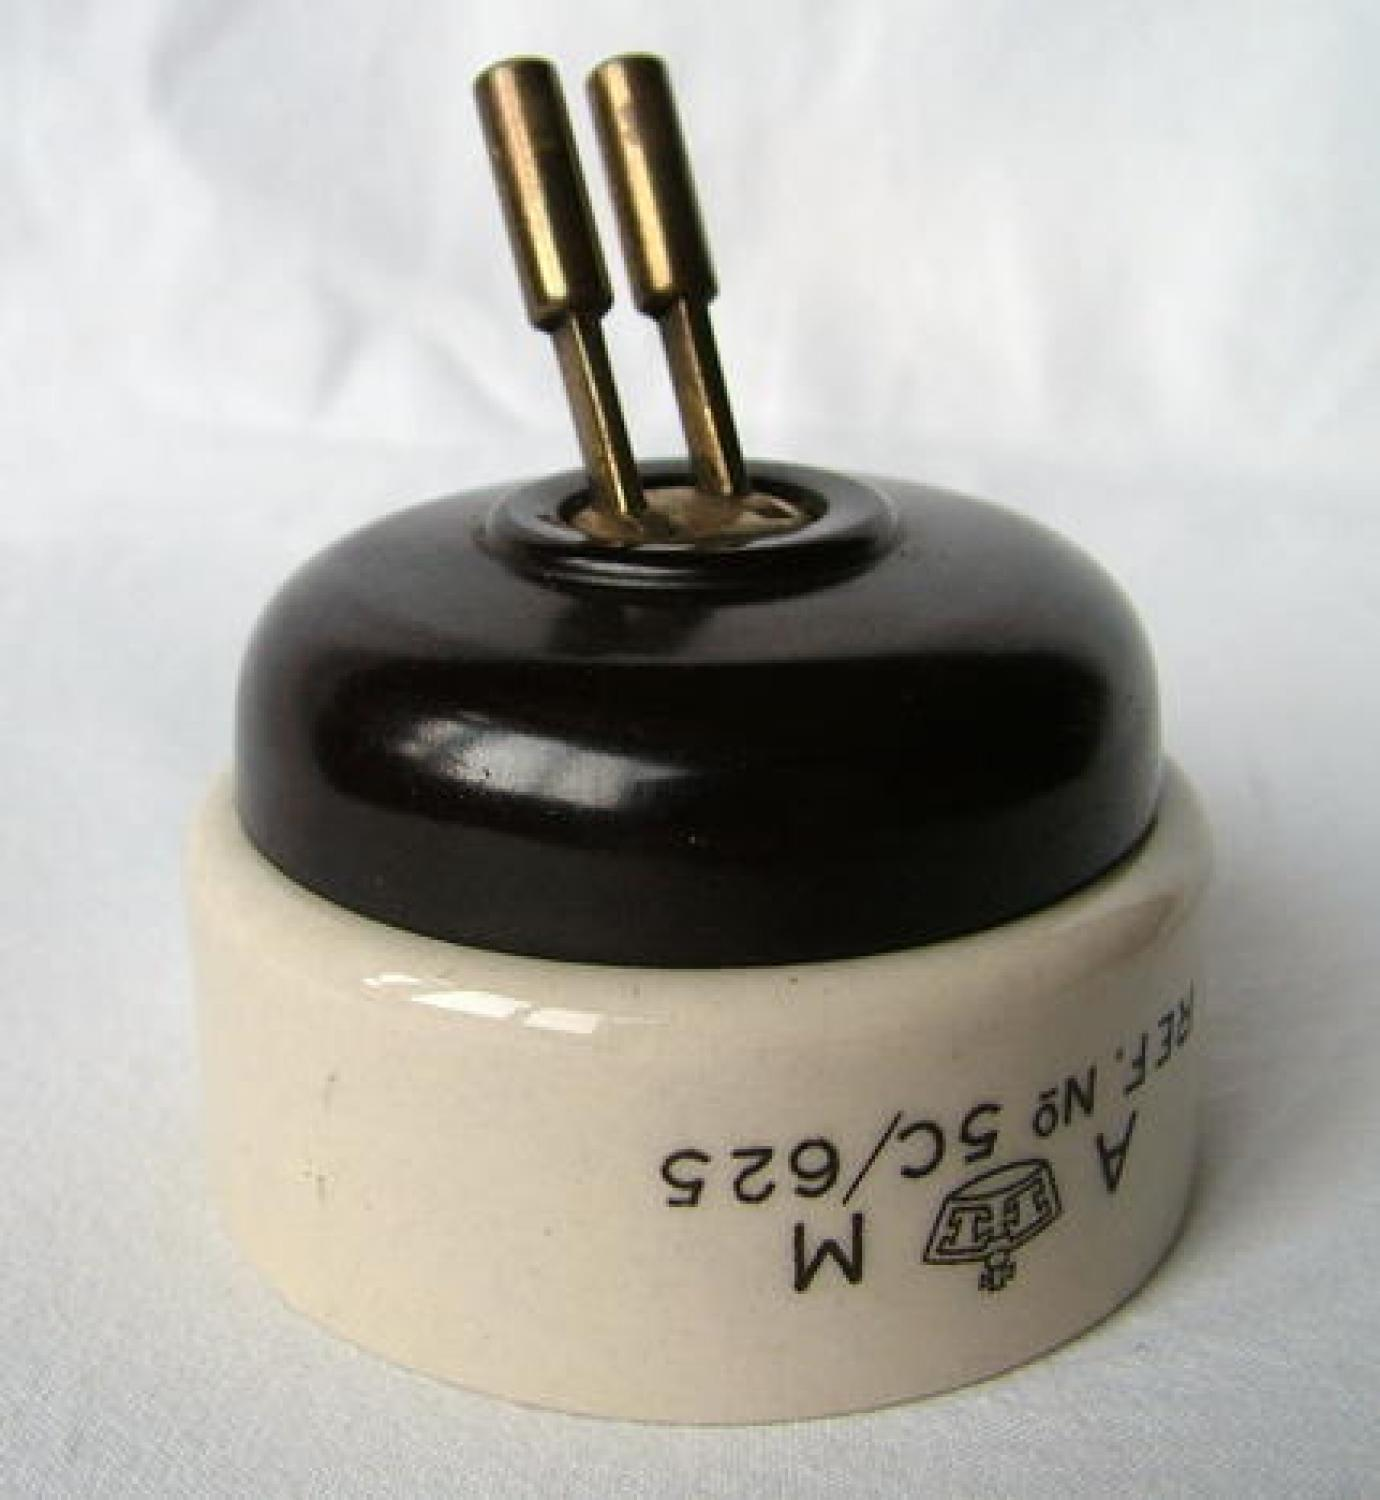 R.A.F. Aircraft Magneto Switch